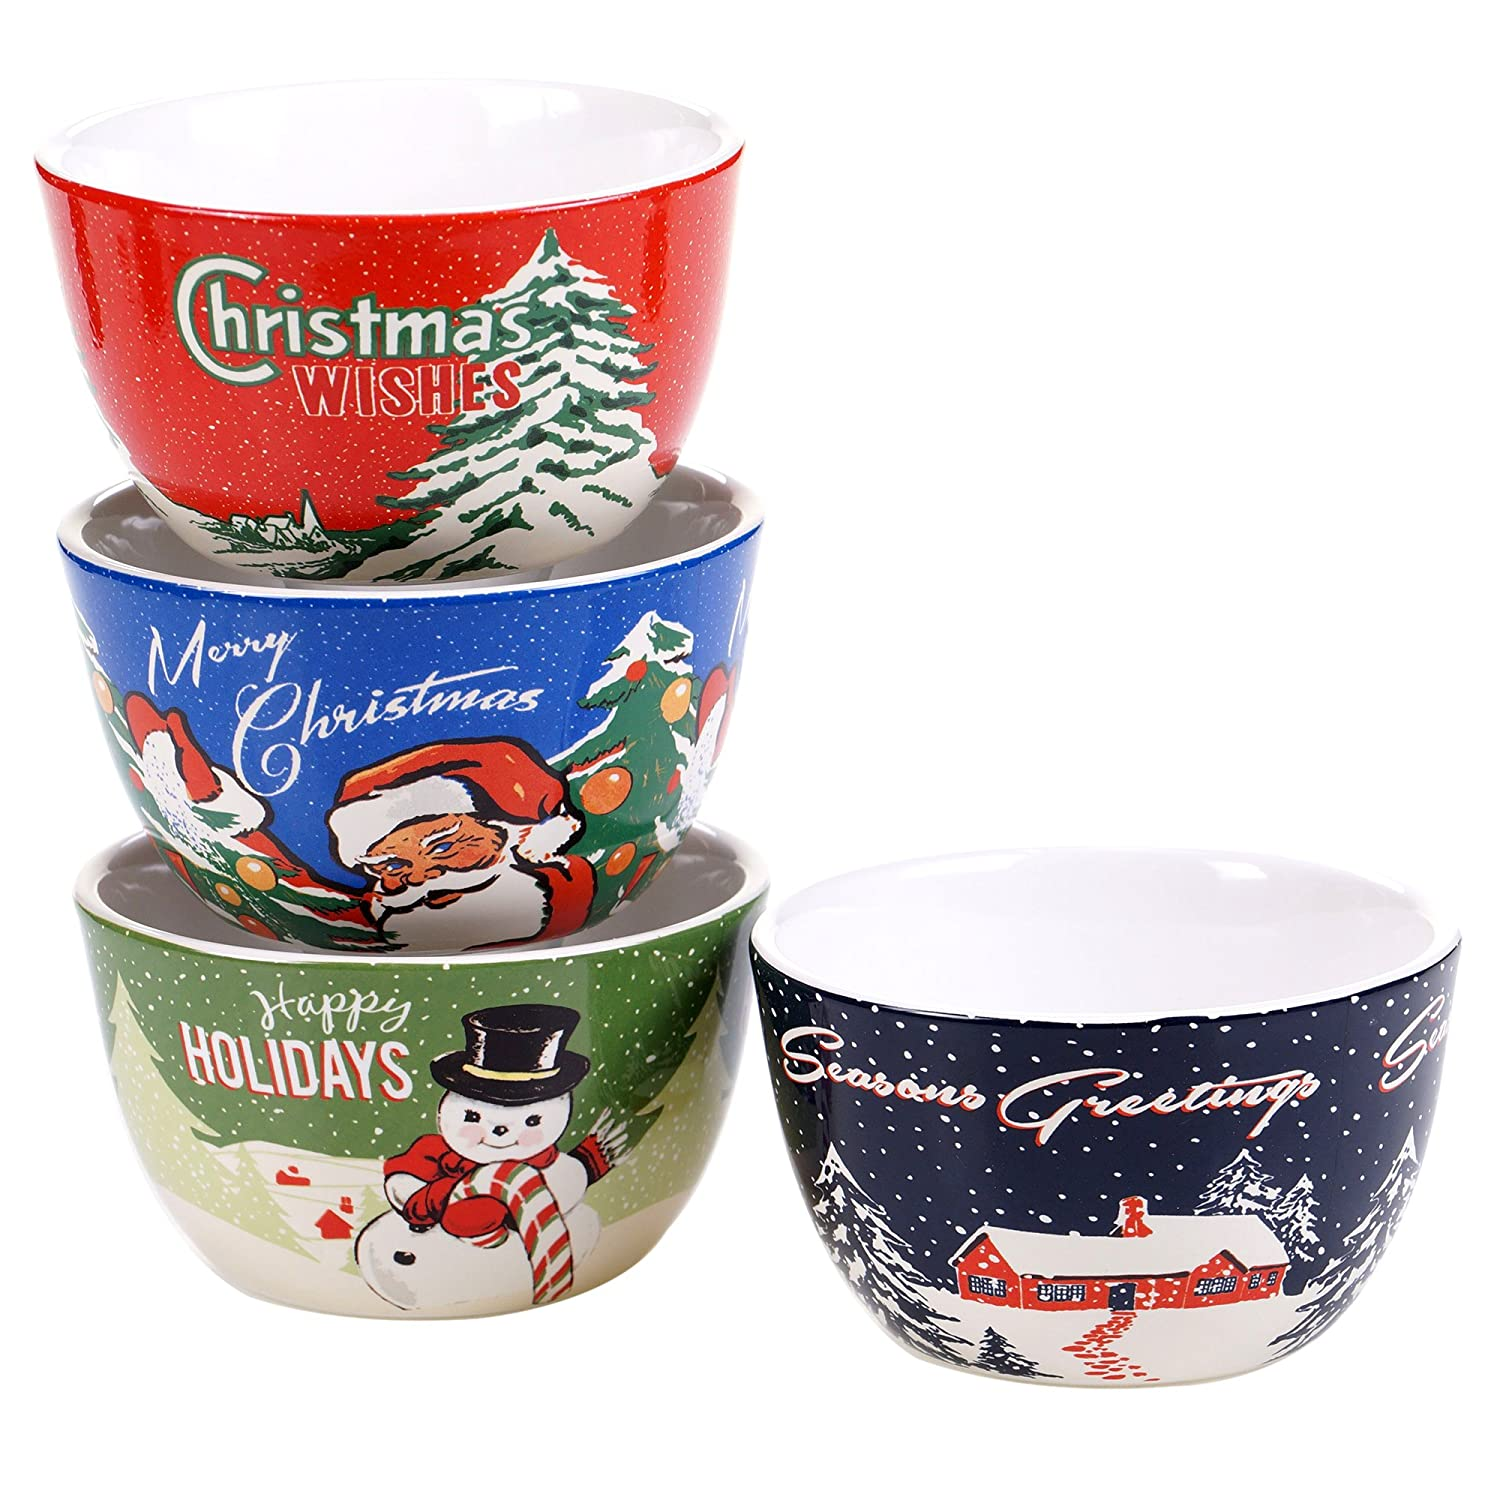 最高の Certified Internationalレトロクリスマスby Tina Ice Higginsのセット4 Certified Ice Cream Bowls Tina 5.25